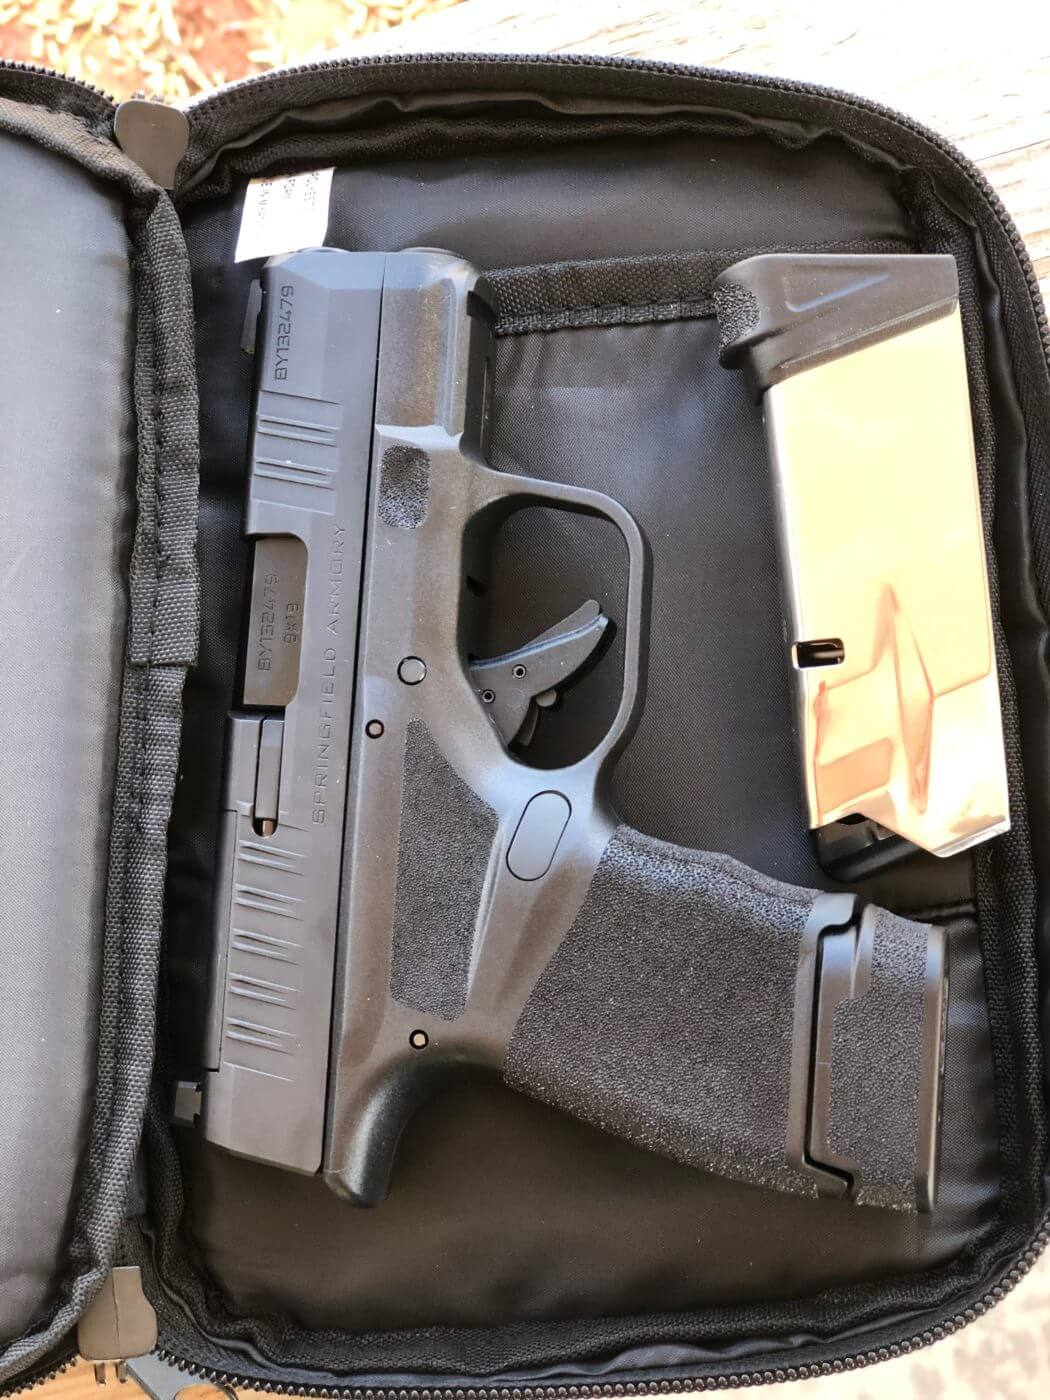 Hellcat pistol in a soft carry case